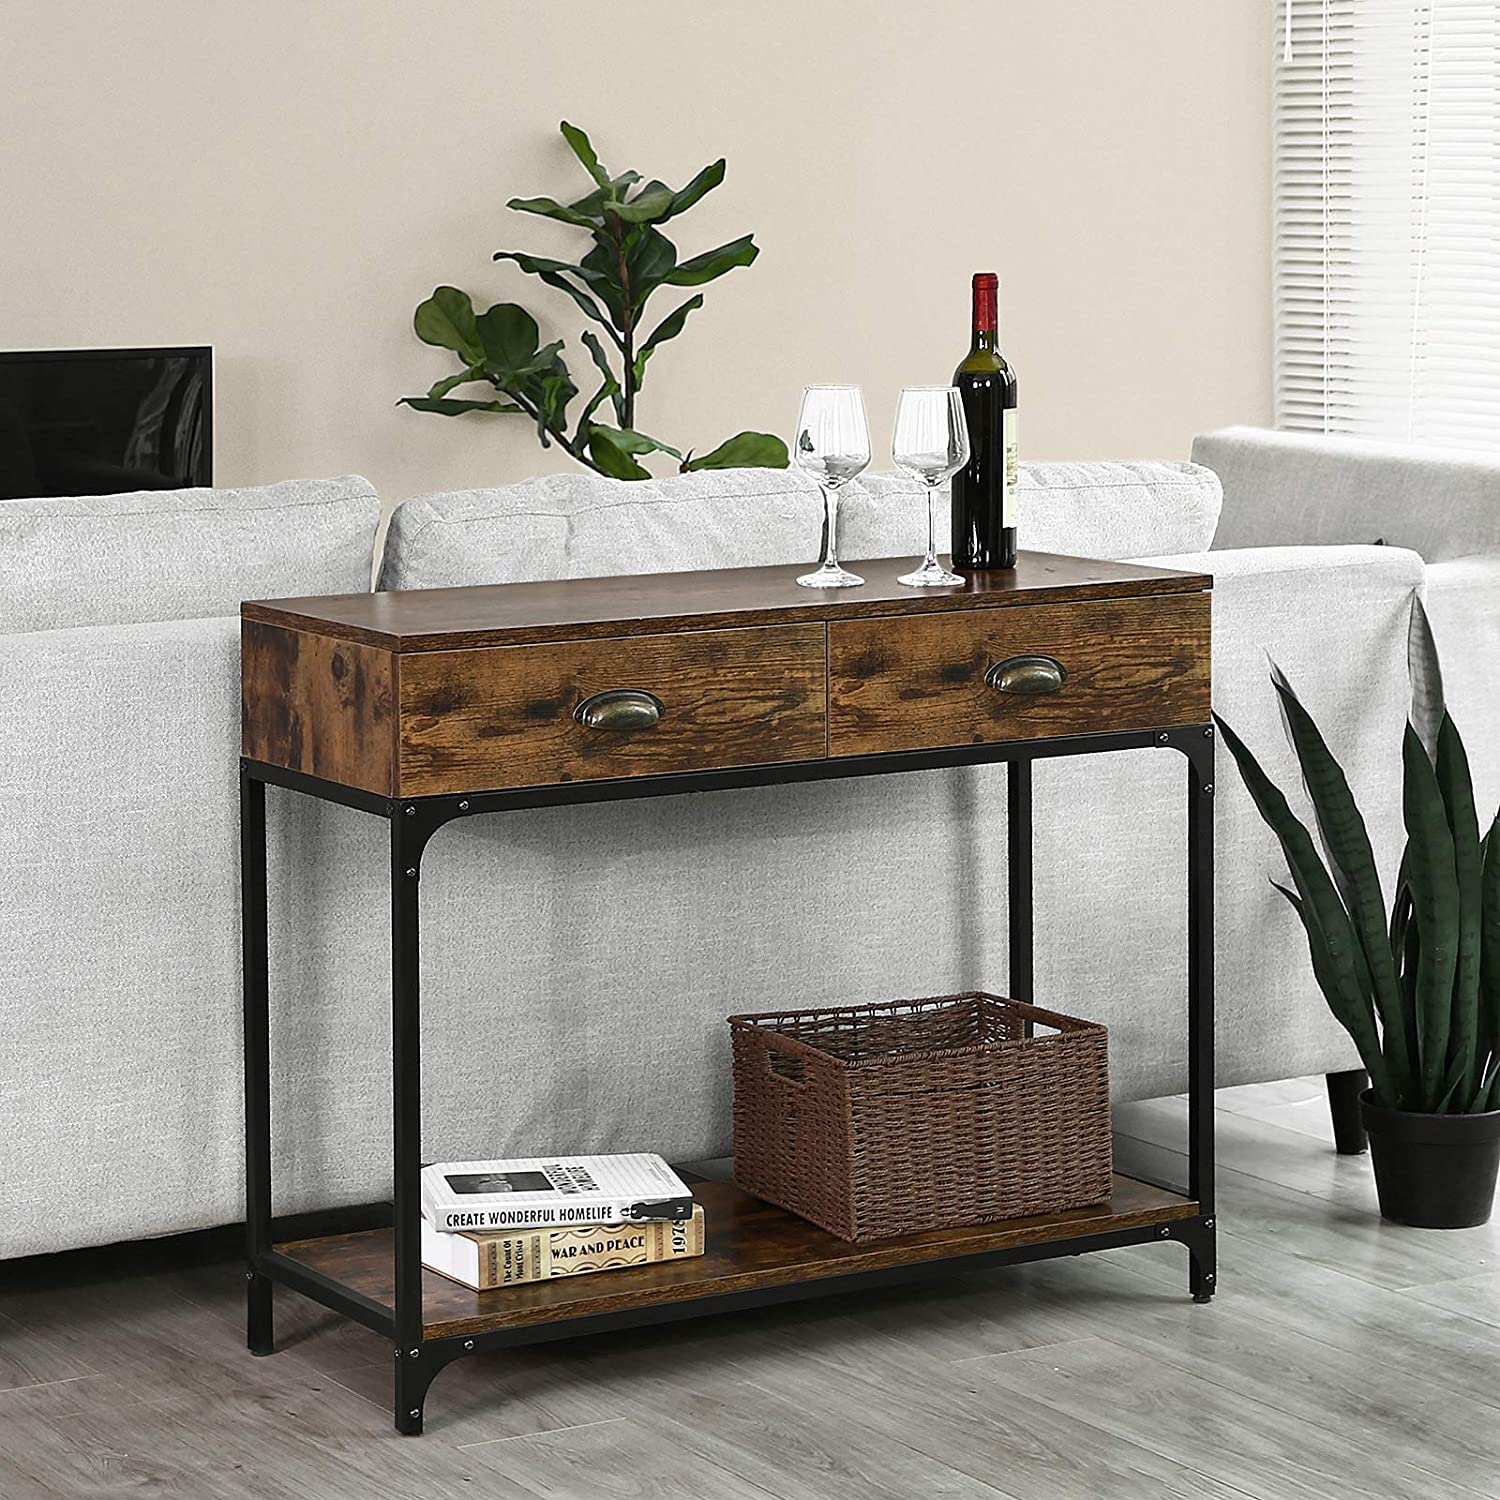 VASAGLE Industrial Console Table, Entryway Sofa Table with 2 Drawers and Shelf, Accent Storage with Sturdy Metal Frame, for Living Room, Rustic Brown ULNT39X